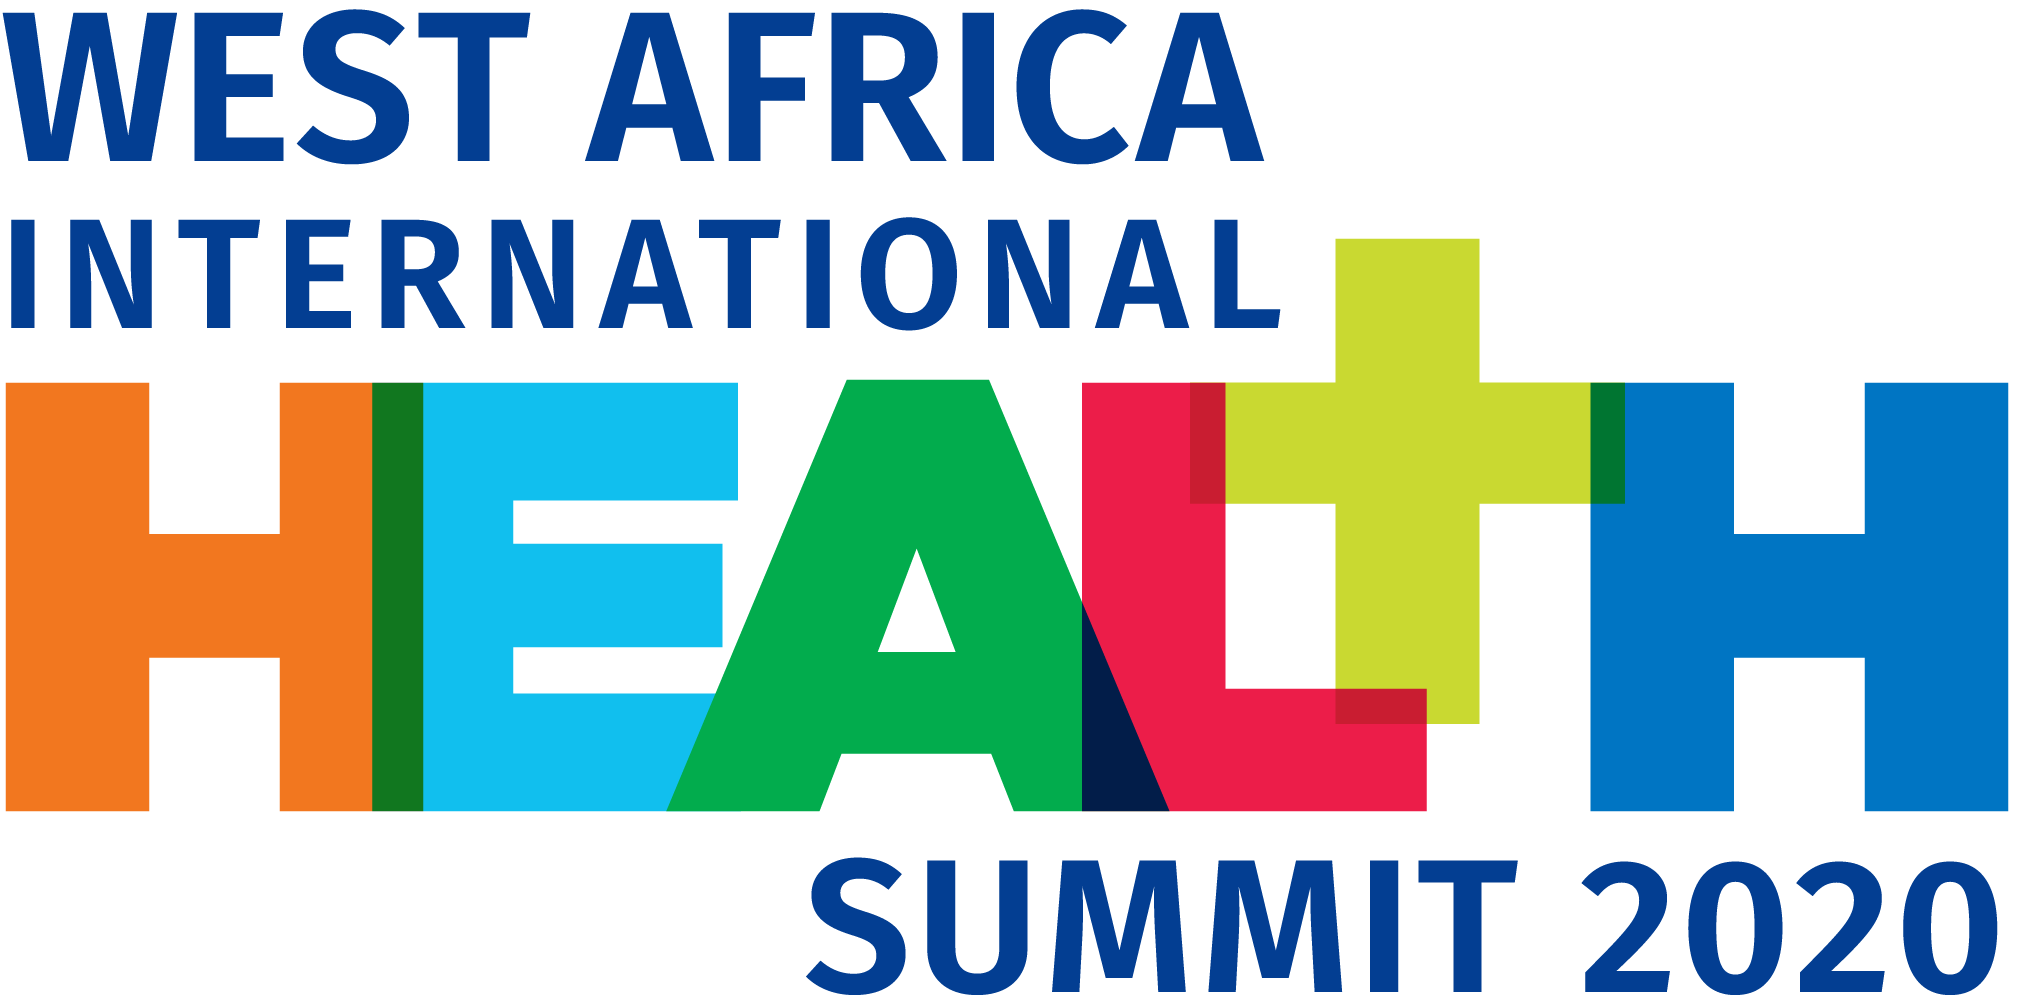 West Africa International Health Summit